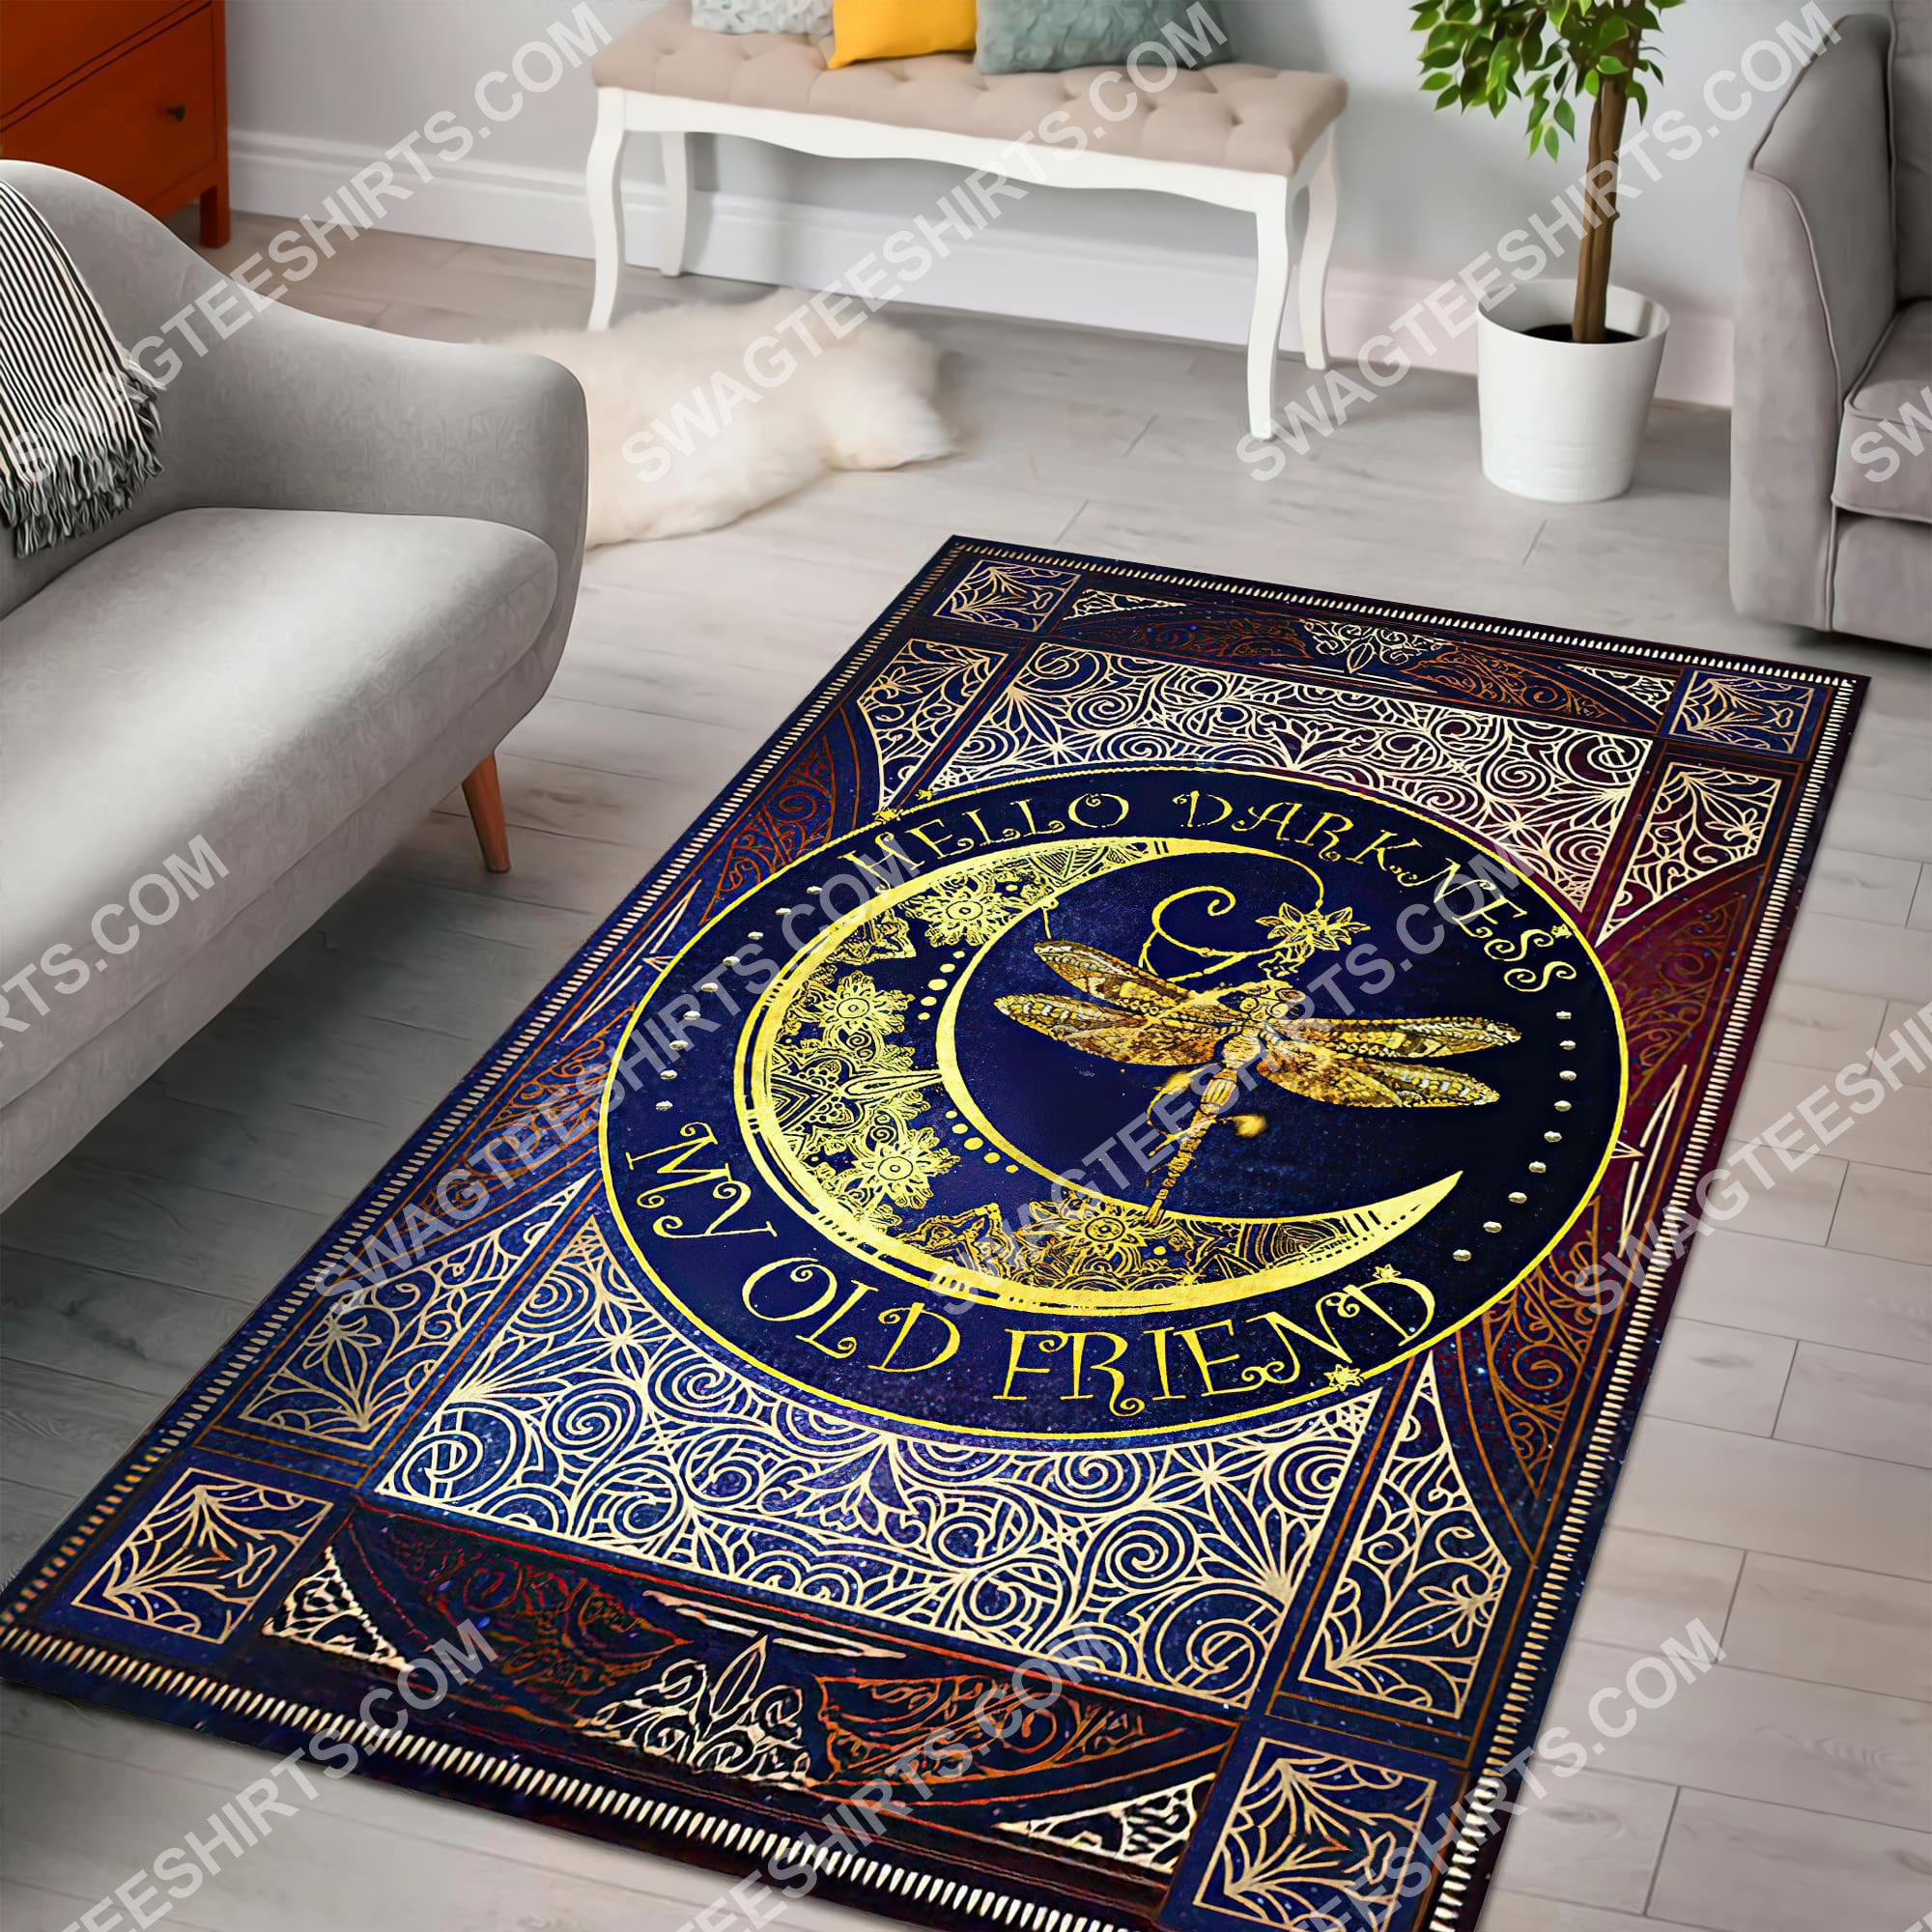 vintage dragonfly sun and moon wicca all over printed rug 2(1)